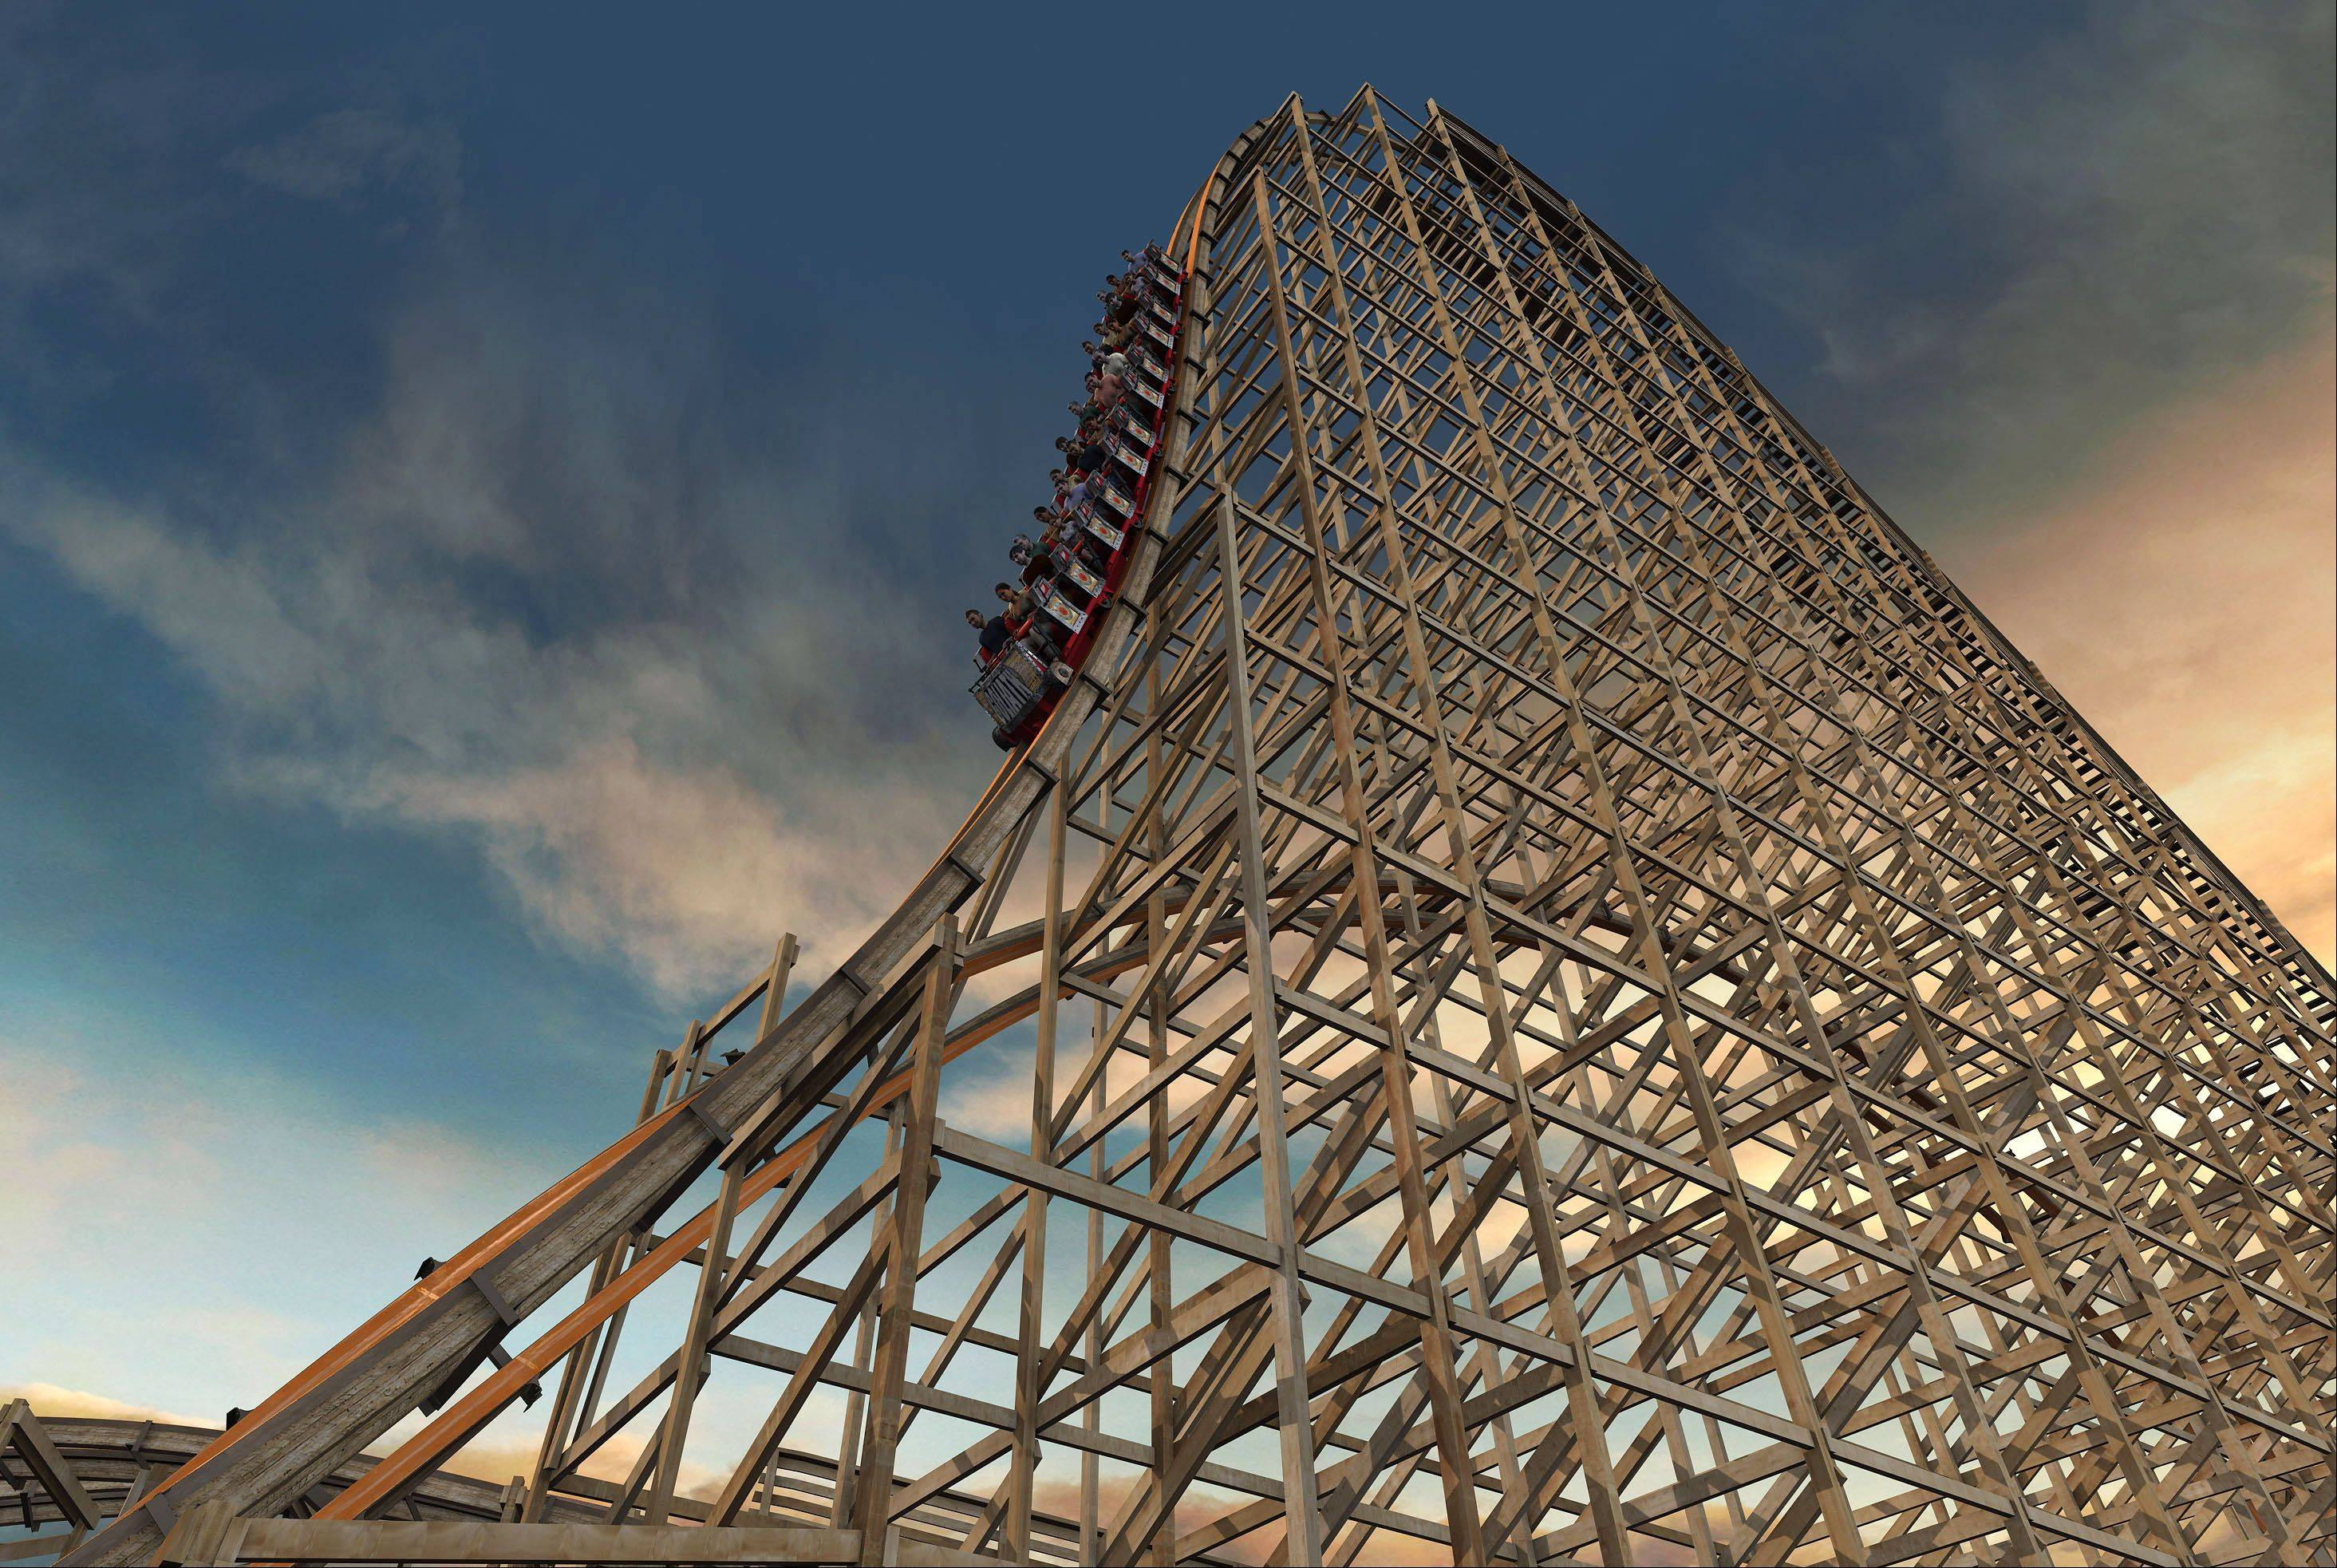 Rendering of the new Goliath wooden roller coaster planned for Six Flags Great America in Gurnee.